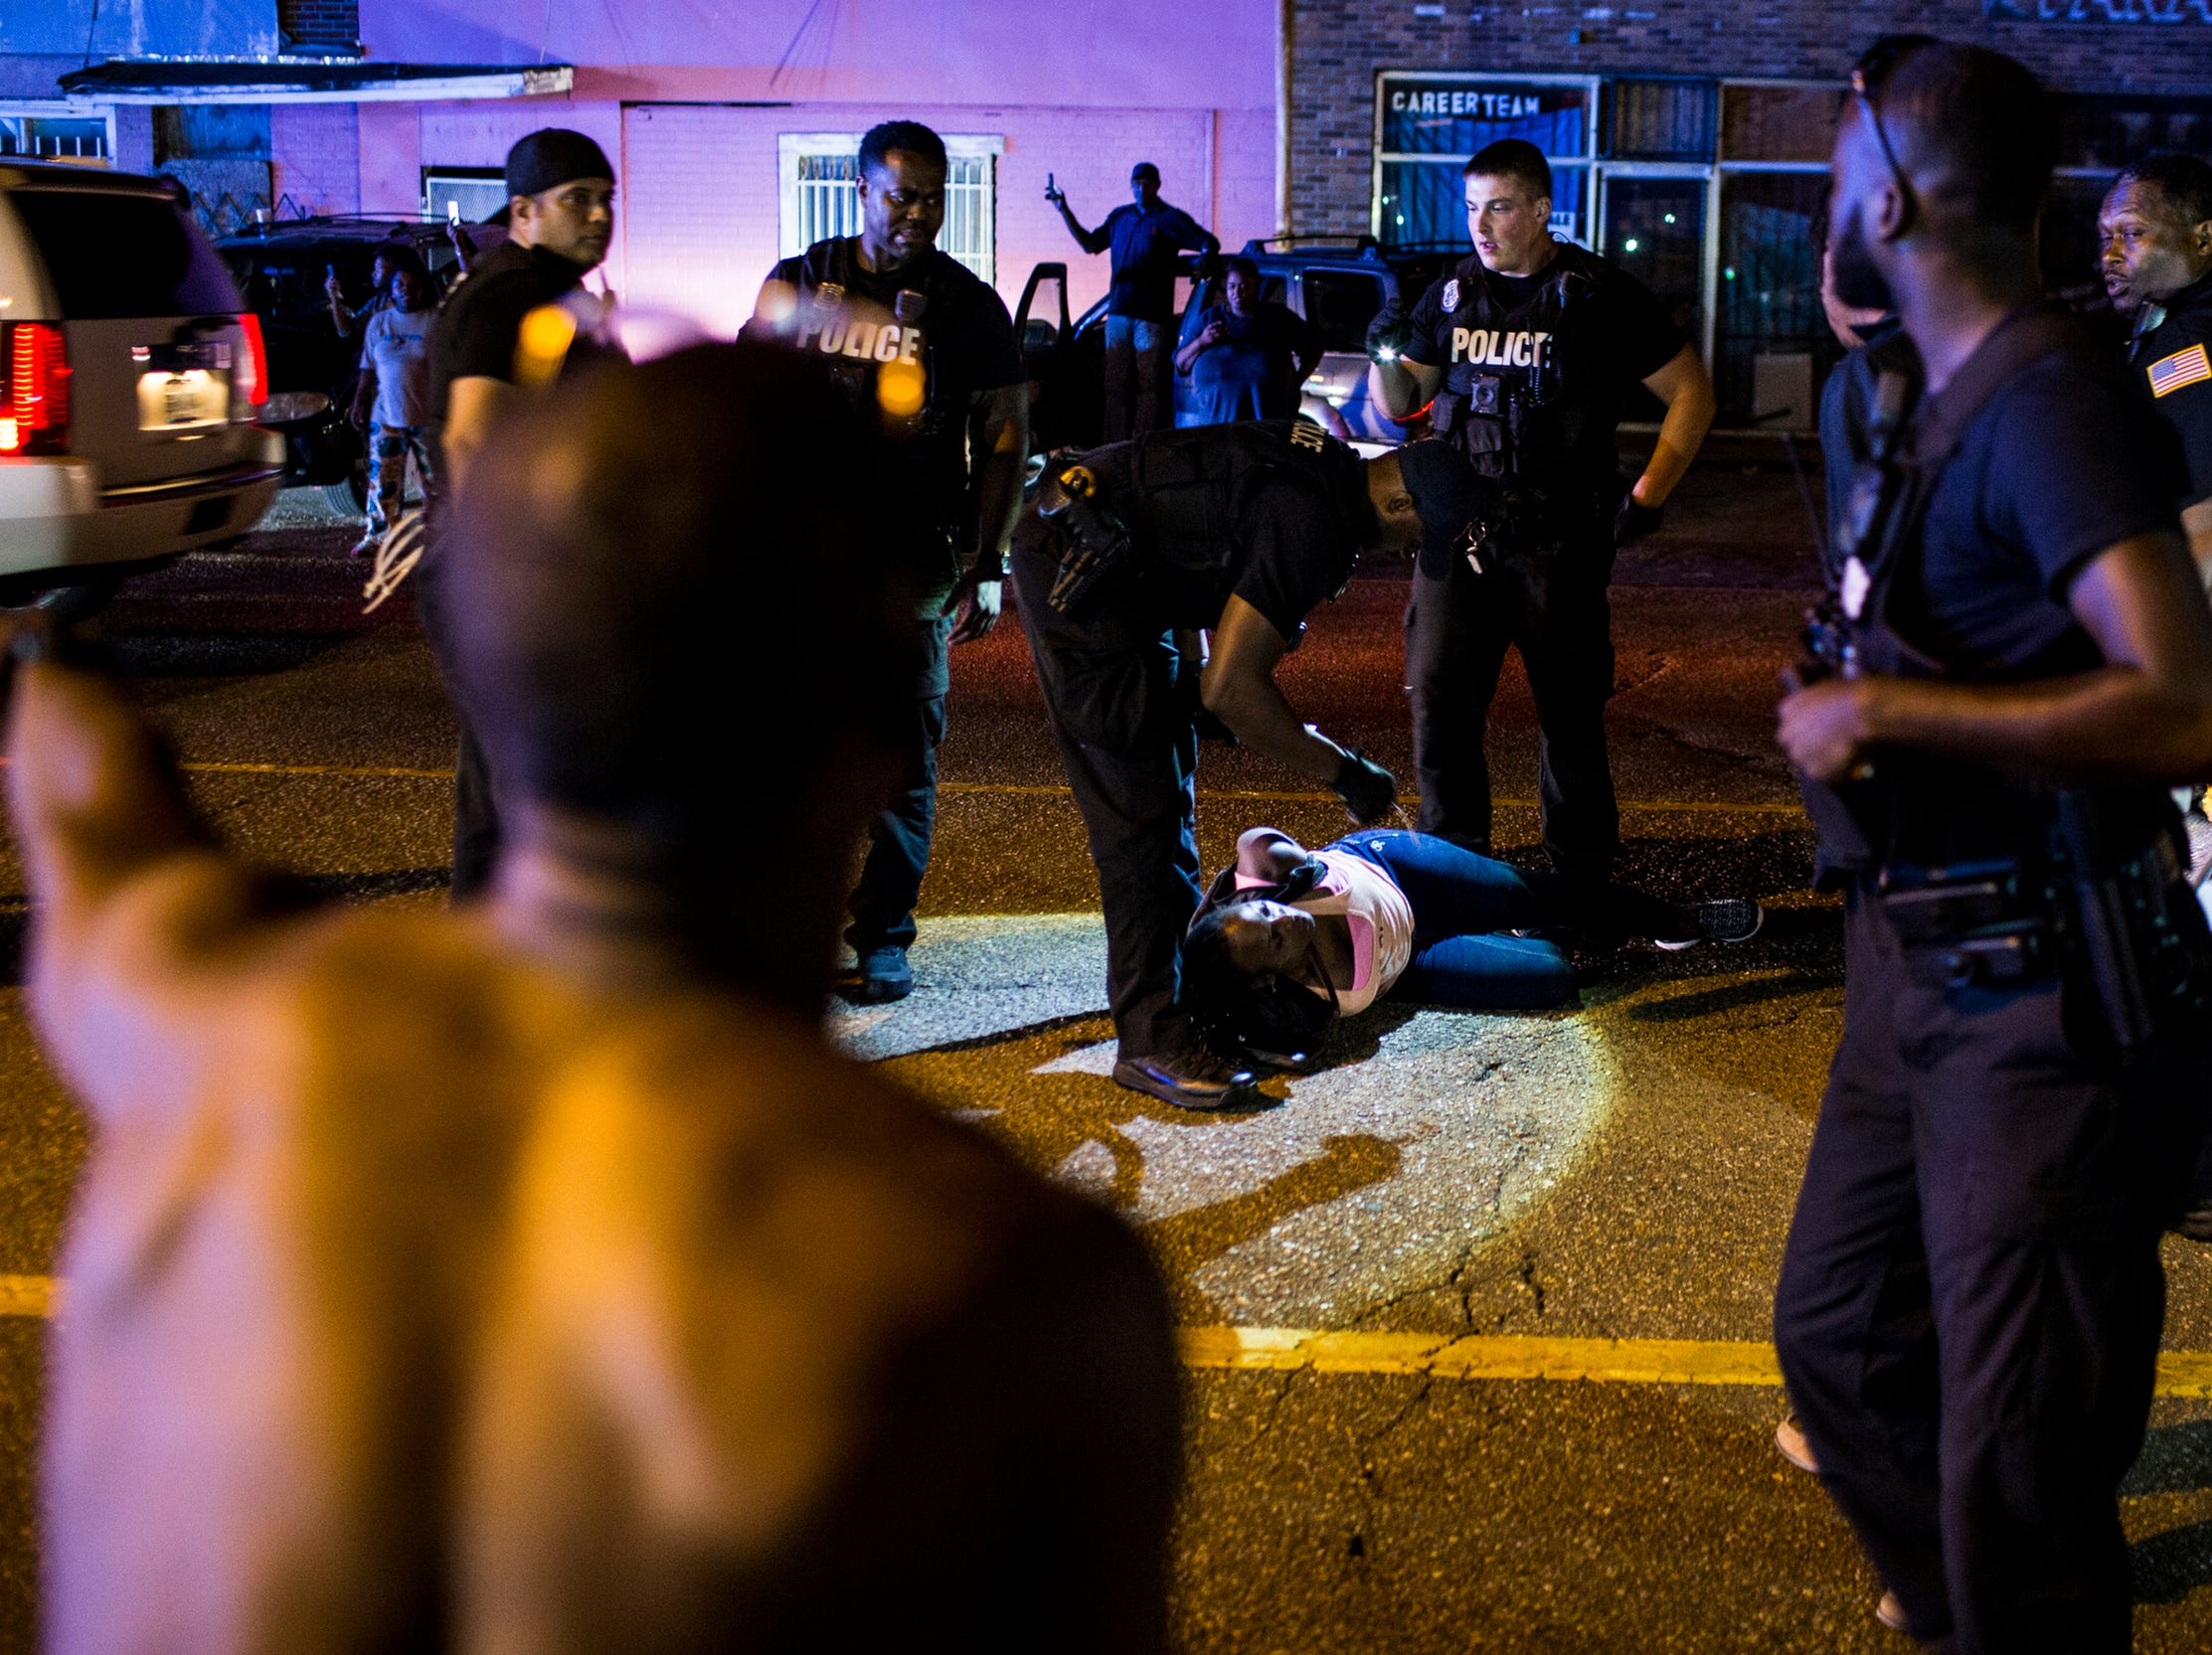 September 19 2018 - Barbara Burress who was part of a protest against the officer-involved shooting of Martavious Banks is arrested along Elvis Presley Boulevard. Protestors had shut down traffic along Elvis Presley near the site of the shooting after news that officers involved in the shooting of Banks may have improperly switched off their dashboard or body cameras, or didn't turn them on.